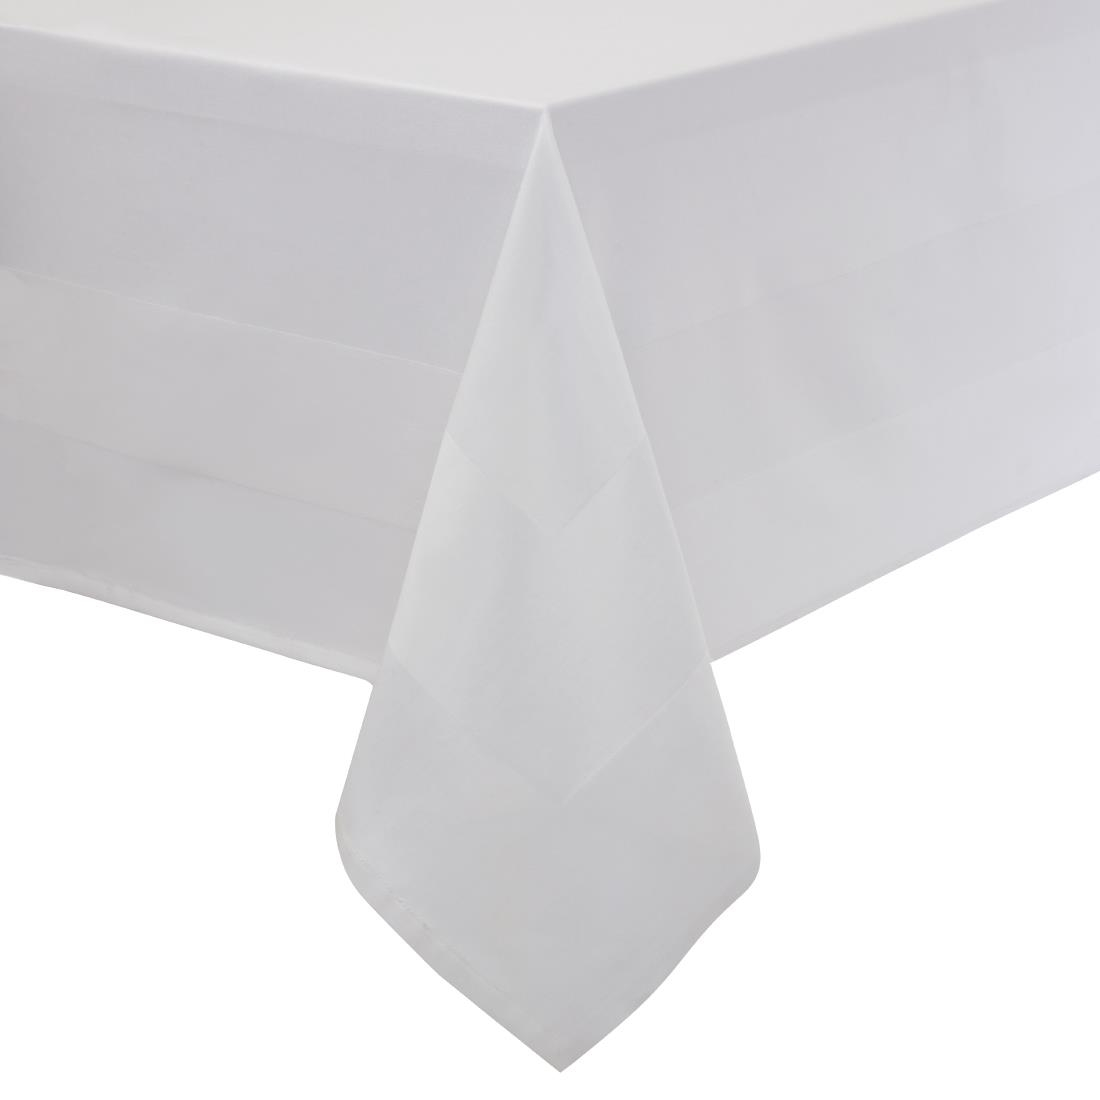 Image of Mitre Luxury Satin Band Tablecloth 1600 x 1600mm